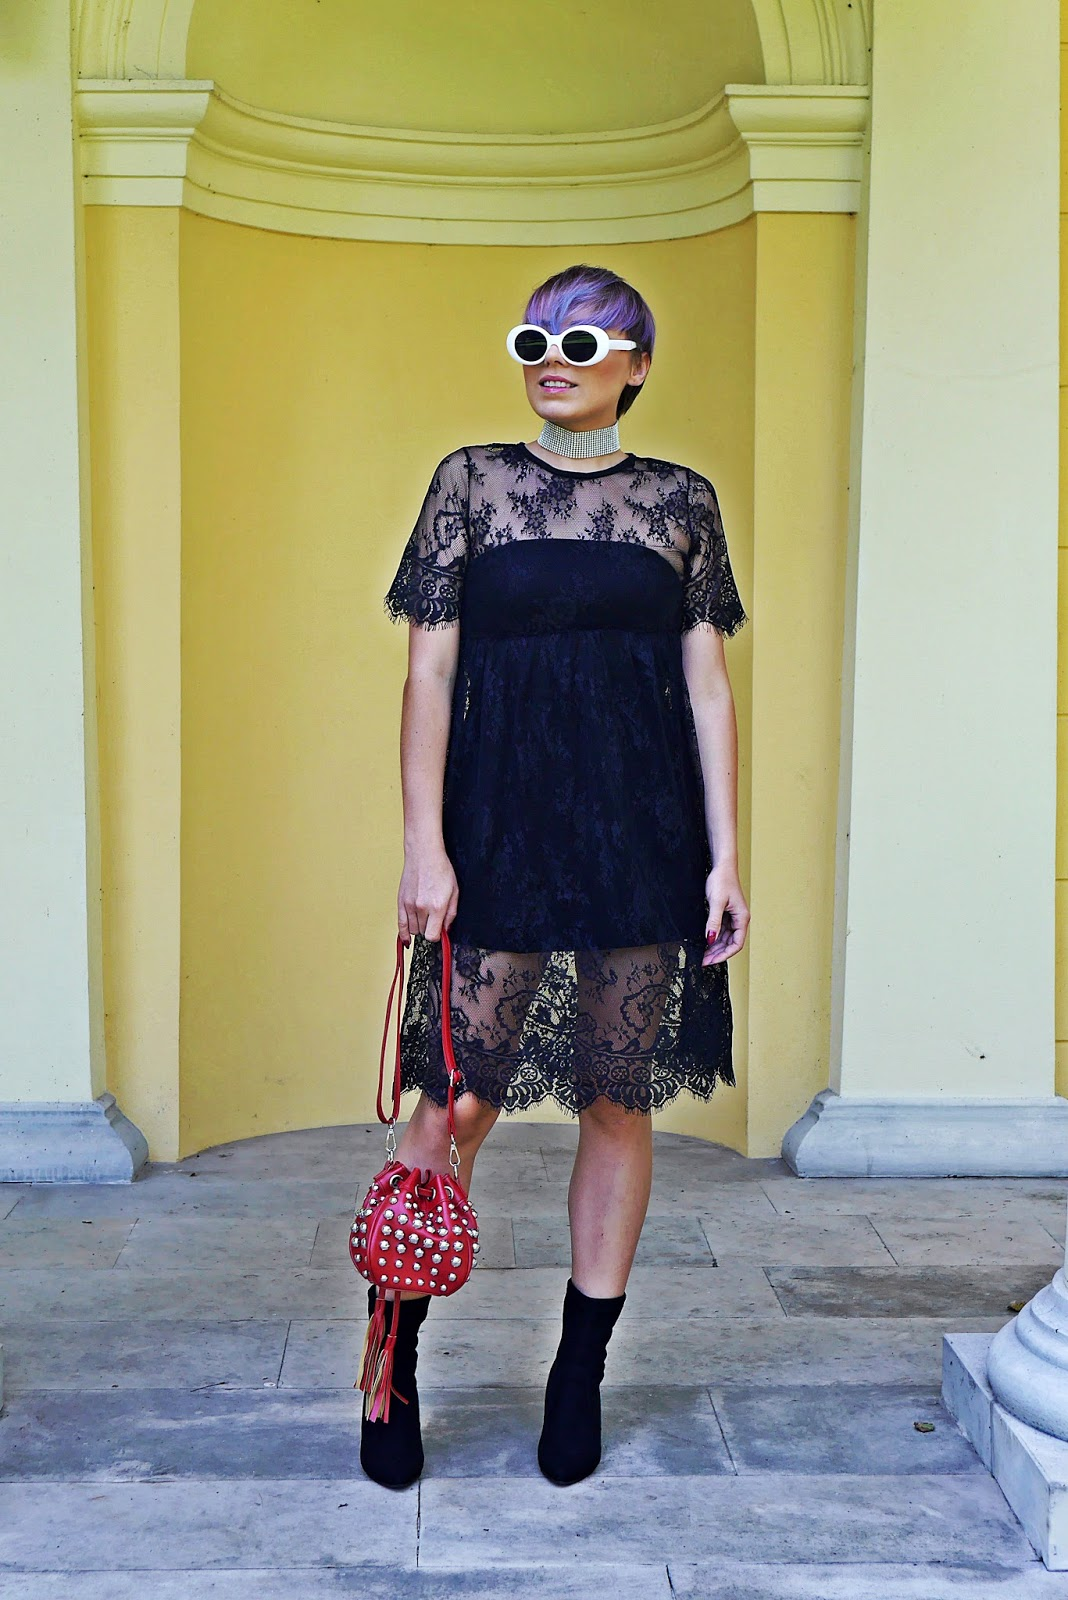 1_rosegal_lace_dress_red_bag_studs_socks_shoes_boots_white_retro_sunglass_karyn_blog_130917a